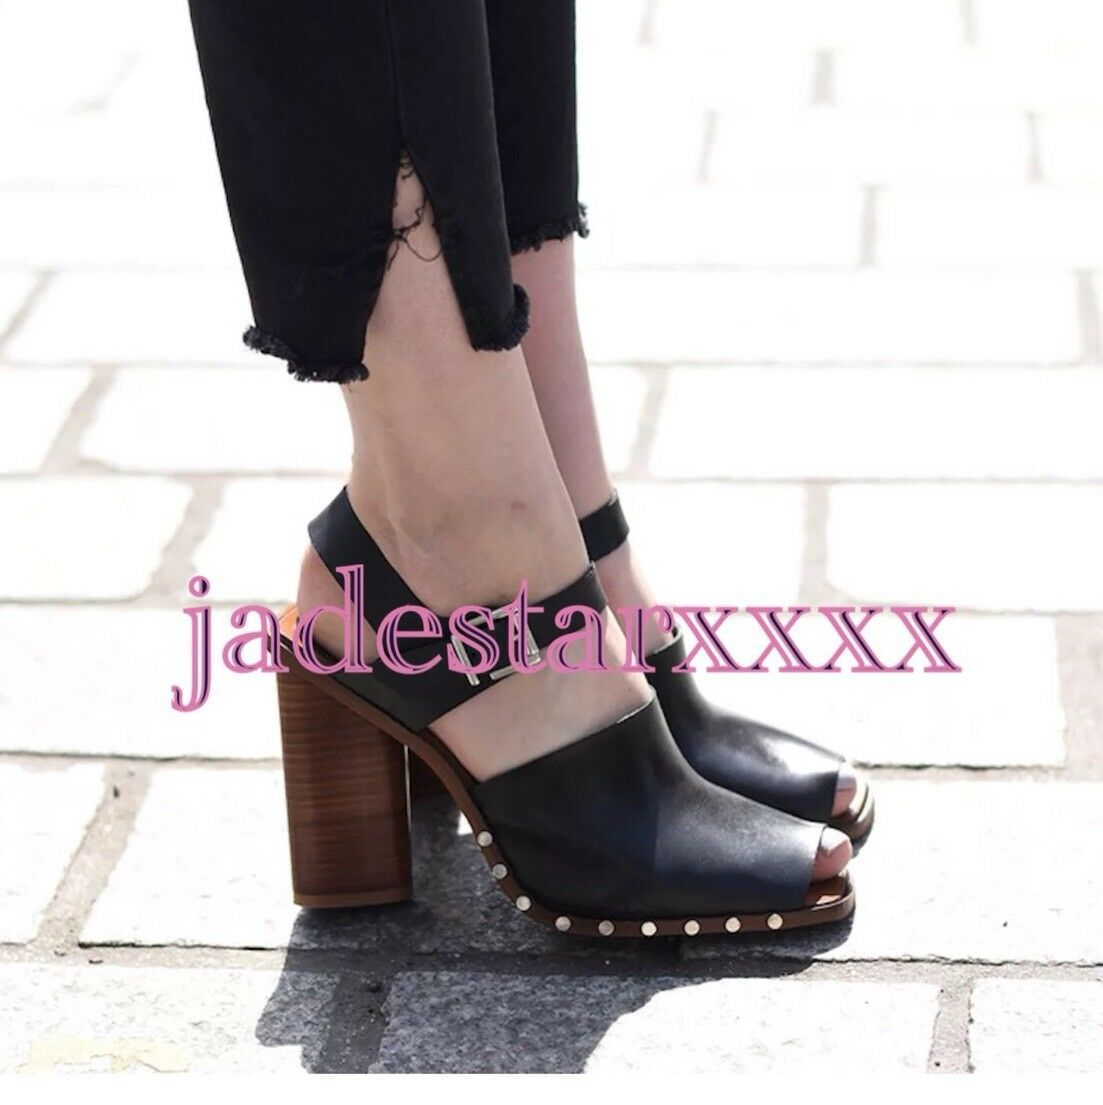 Zara Zara Zara Black Wood Block Heel Open Toe Sandals 4 37 New Leather Studded BNWT 3226ed